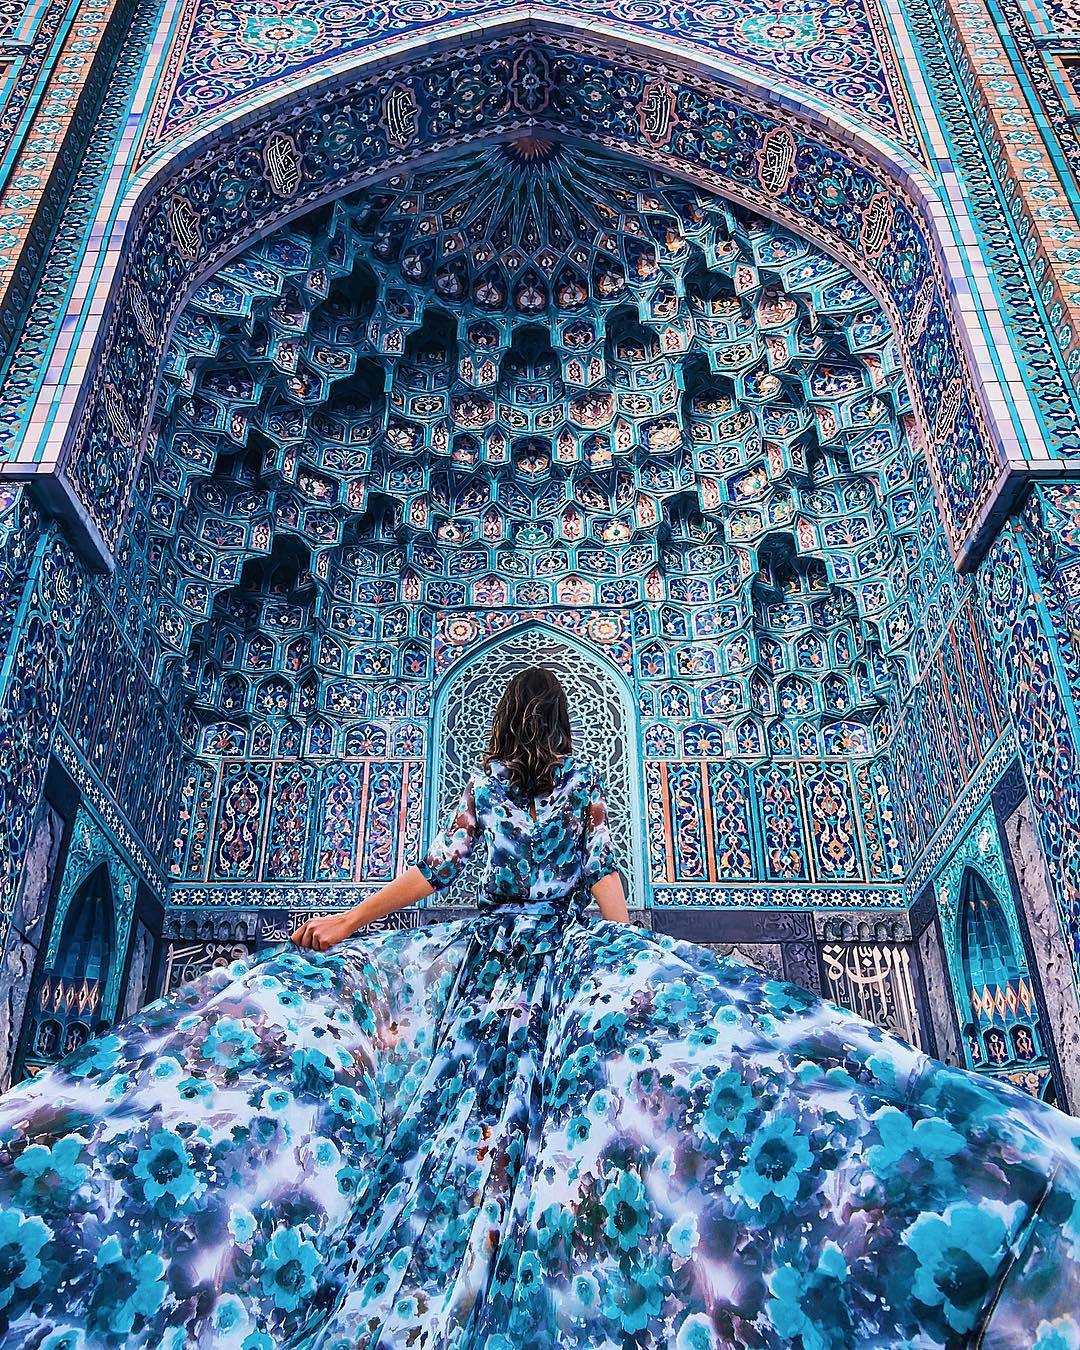 Mosque St. Petersburg, Matching a dress with Saint Petersburg Mosque's interior : pics